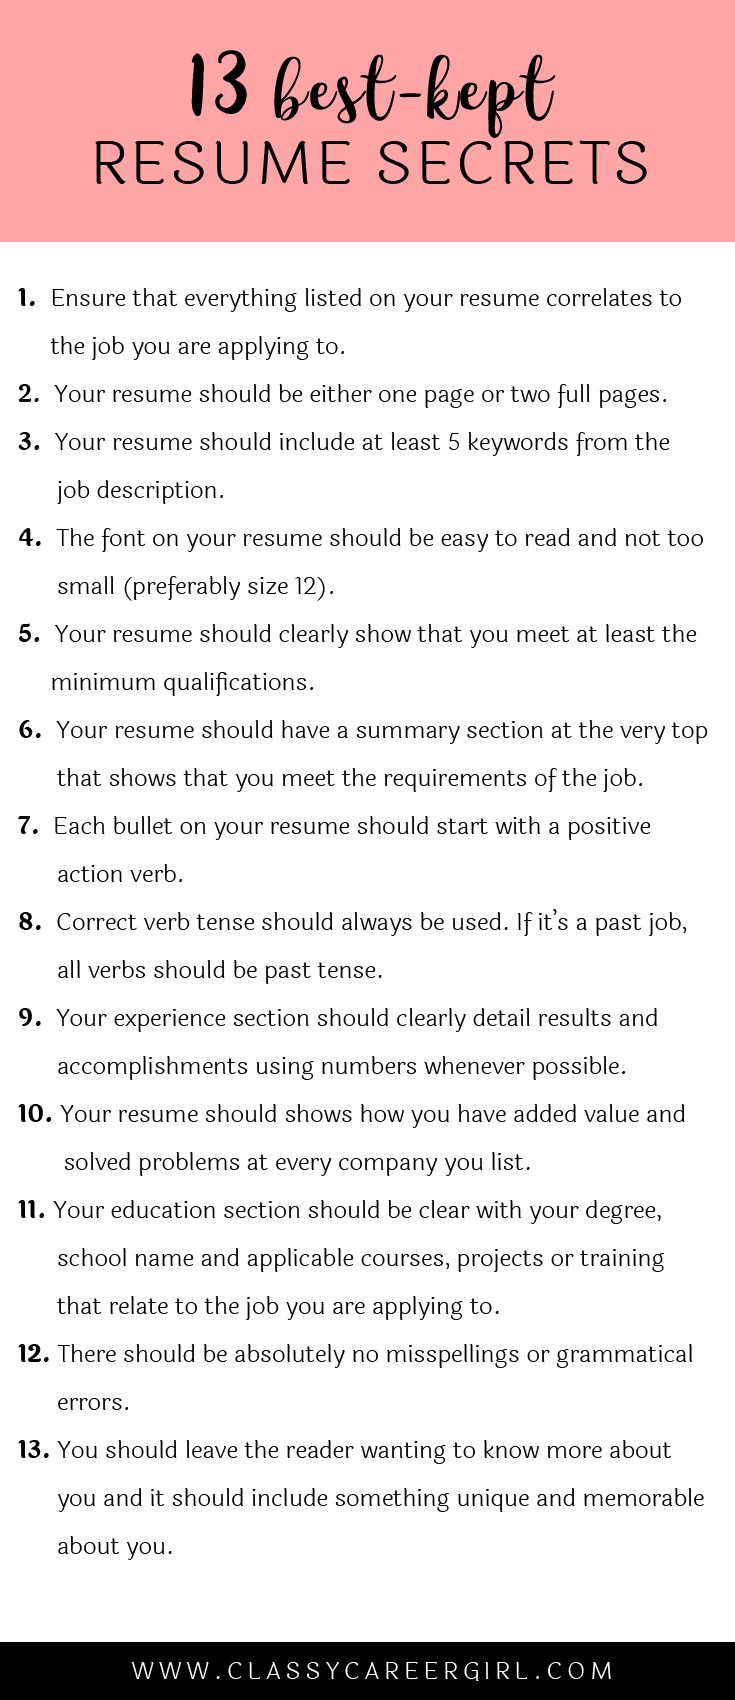 Opposenewapstandardsus  Nice  Ideas About Resume On Pinterest  Cv Format Resume  With Gorgeous Some Hiring Managers Will Toss Your Resume Out If You Dont Know These  With Amusing Does Microsoft Word Have A Resume Template Also Resume Abilities In Addition Janitor Resume Sample And Resume Sales Objective As Well As Estate Manager Resume Additionally Hvac Installer Resume From Pinterestcom With Opposenewapstandardsus  Gorgeous  Ideas About Resume On Pinterest  Cv Format Resume  With Amusing Some Hiring Managers Will Toss Your Resume Out If You Dont Know These  And Nice Does Microsoft Word Have A Resume Template Also Resume Abilities In Addition Janitor Resume Sample From Pinterestcom